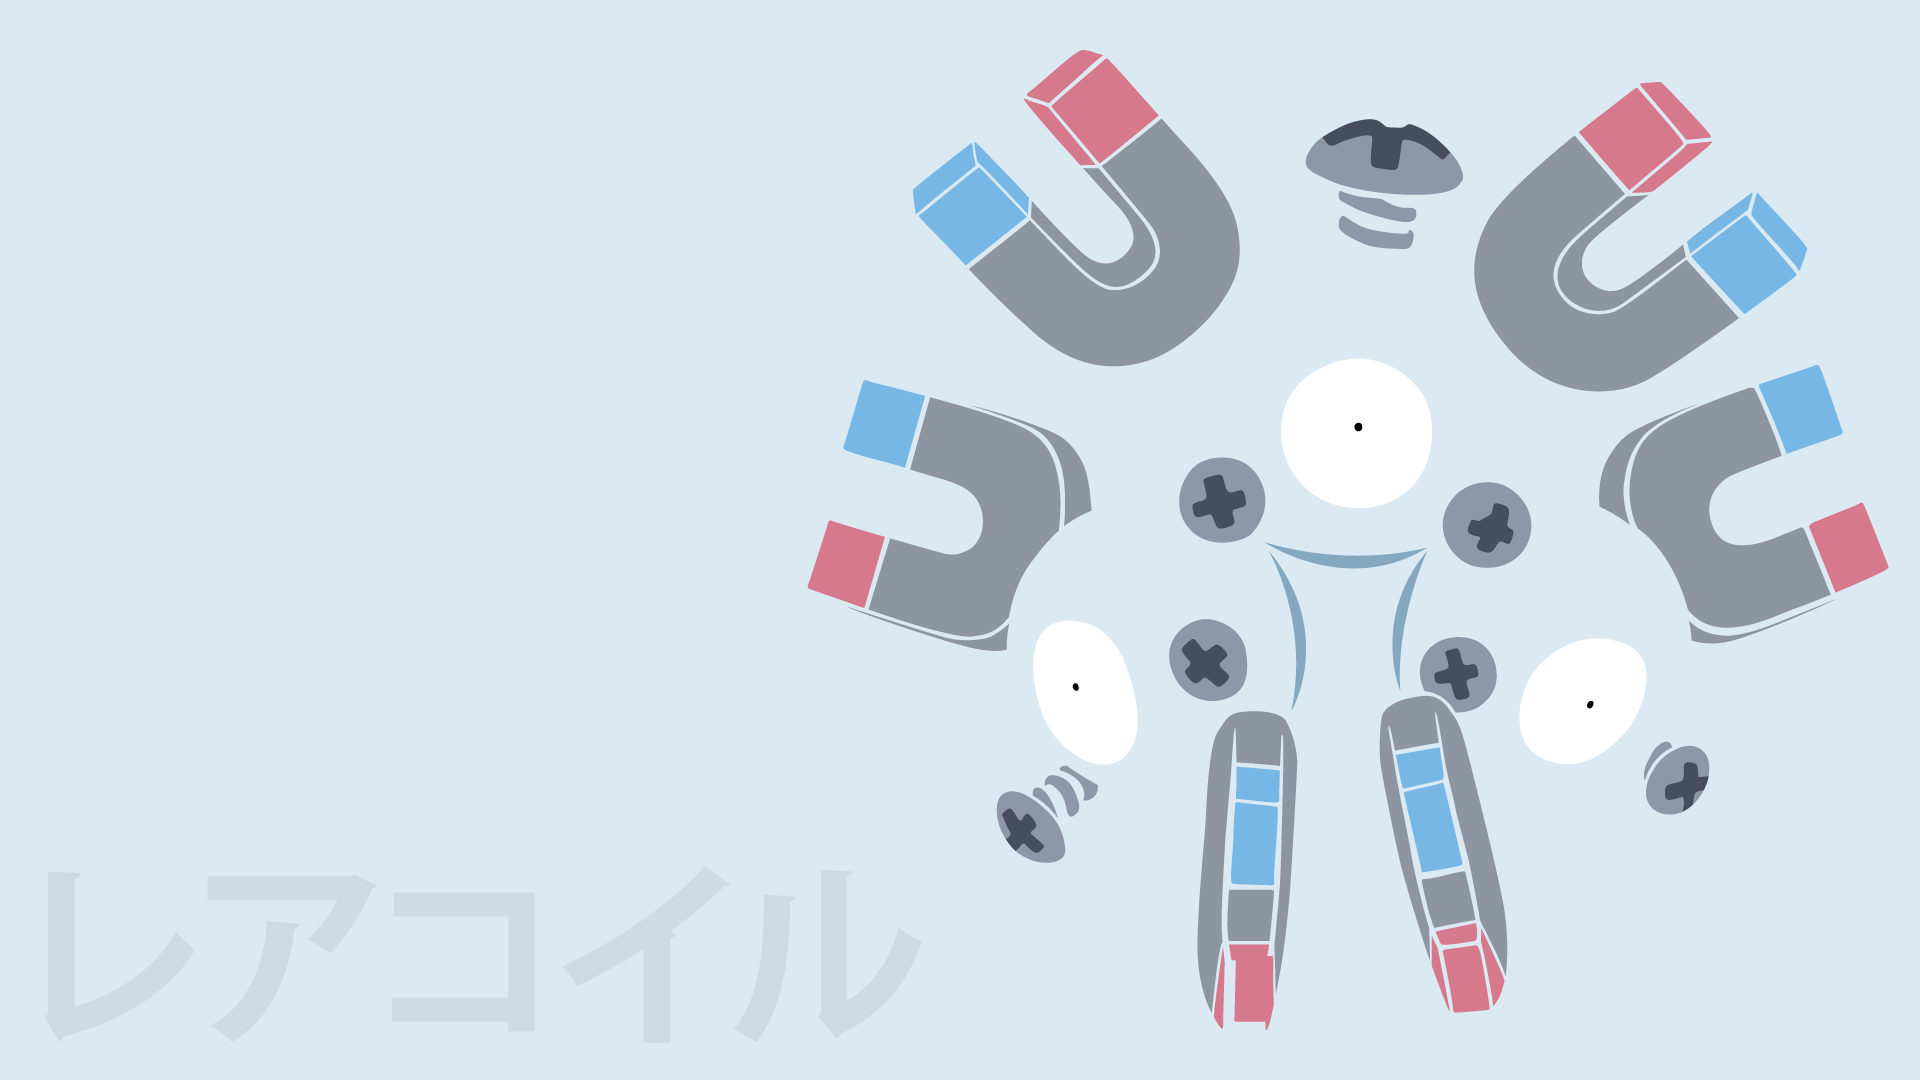 Magneton by DannyMyBrother